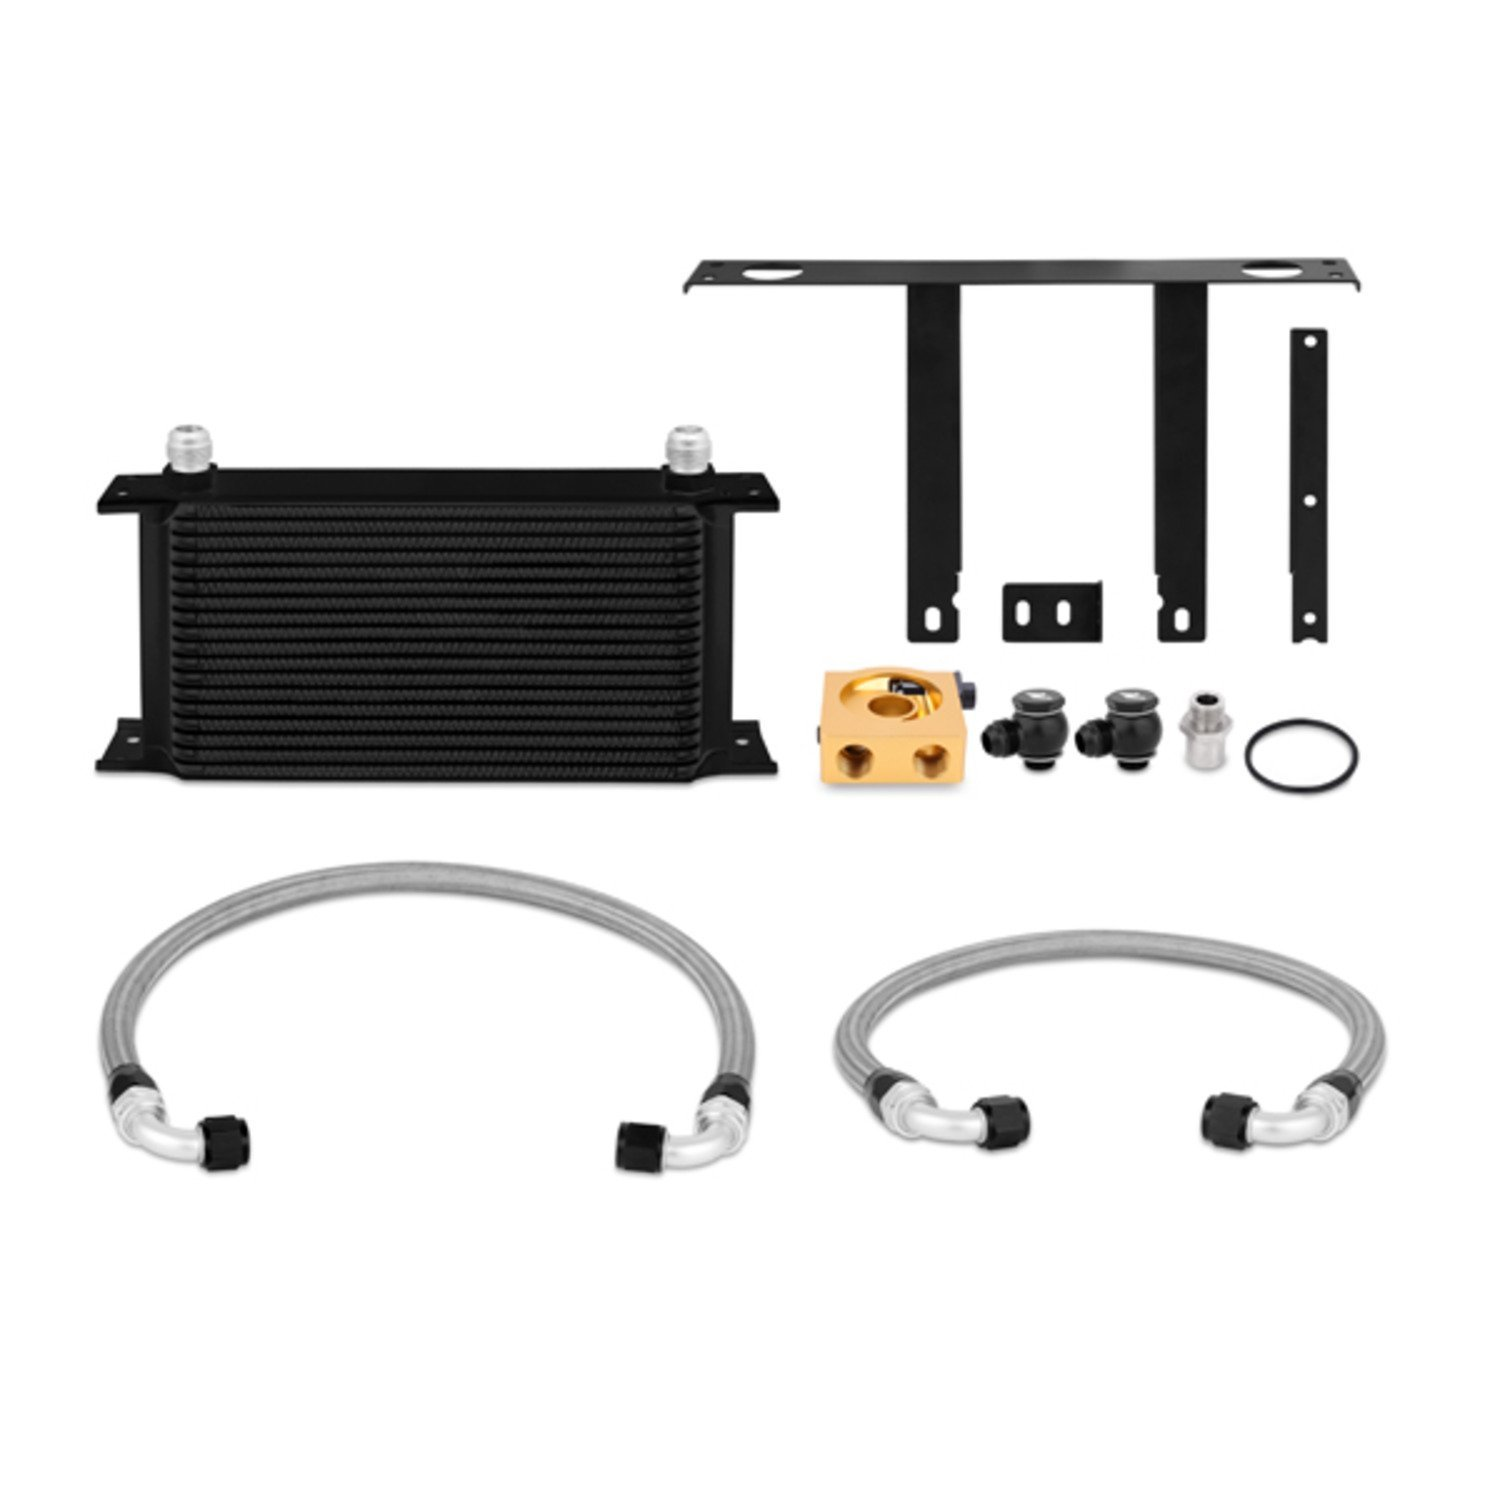 Mishimoto (MMOC-GEN4-10TBK) Black Thermostatic Oil Cooler Kit for Hyundai Genesis Coupe